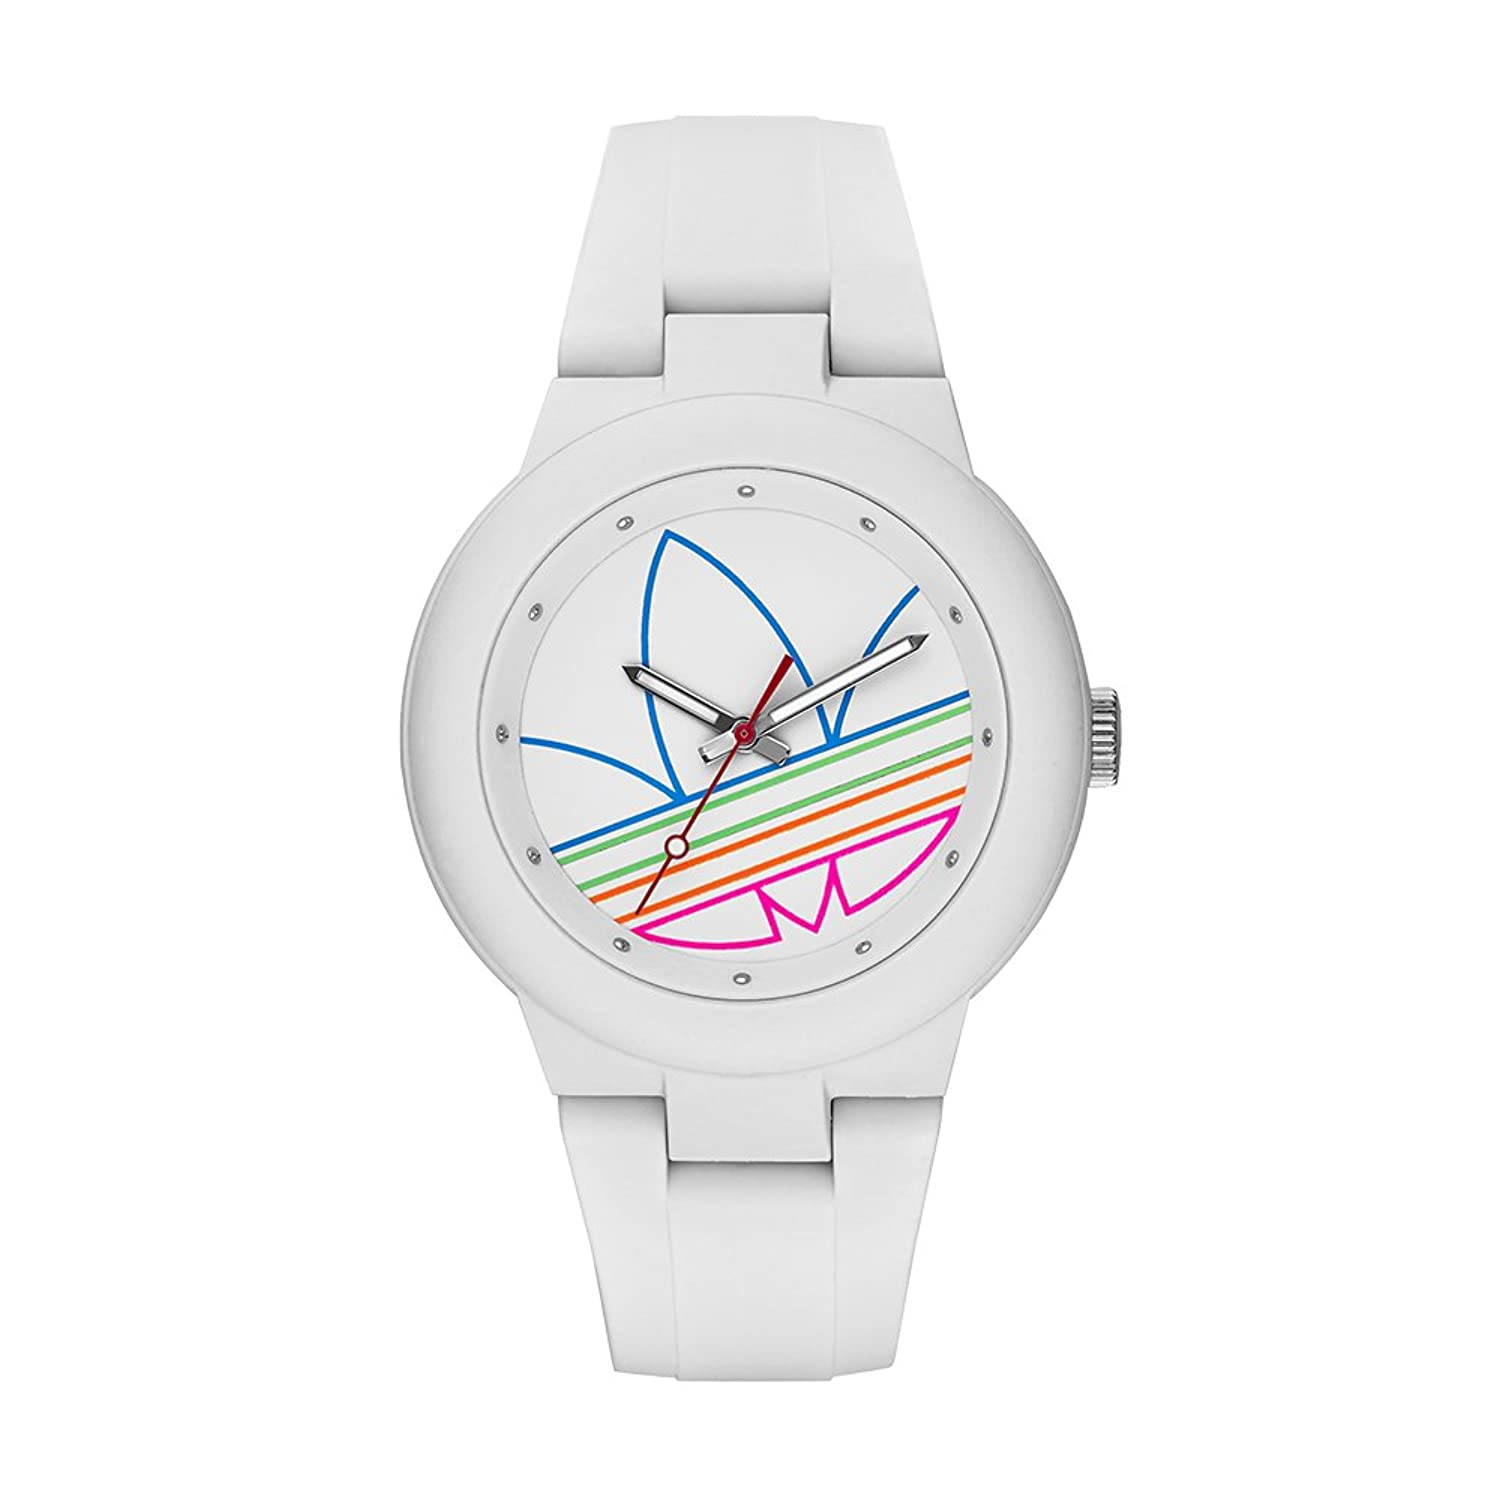 Adidas Mens San Francisco Strap Watch Adh3131multicolor Intl Adh3134 Jam Tangan Pria Hitam Amazoncom Womens Adh3015 Aberdeen White Stainless Steel With Polyurethane Band